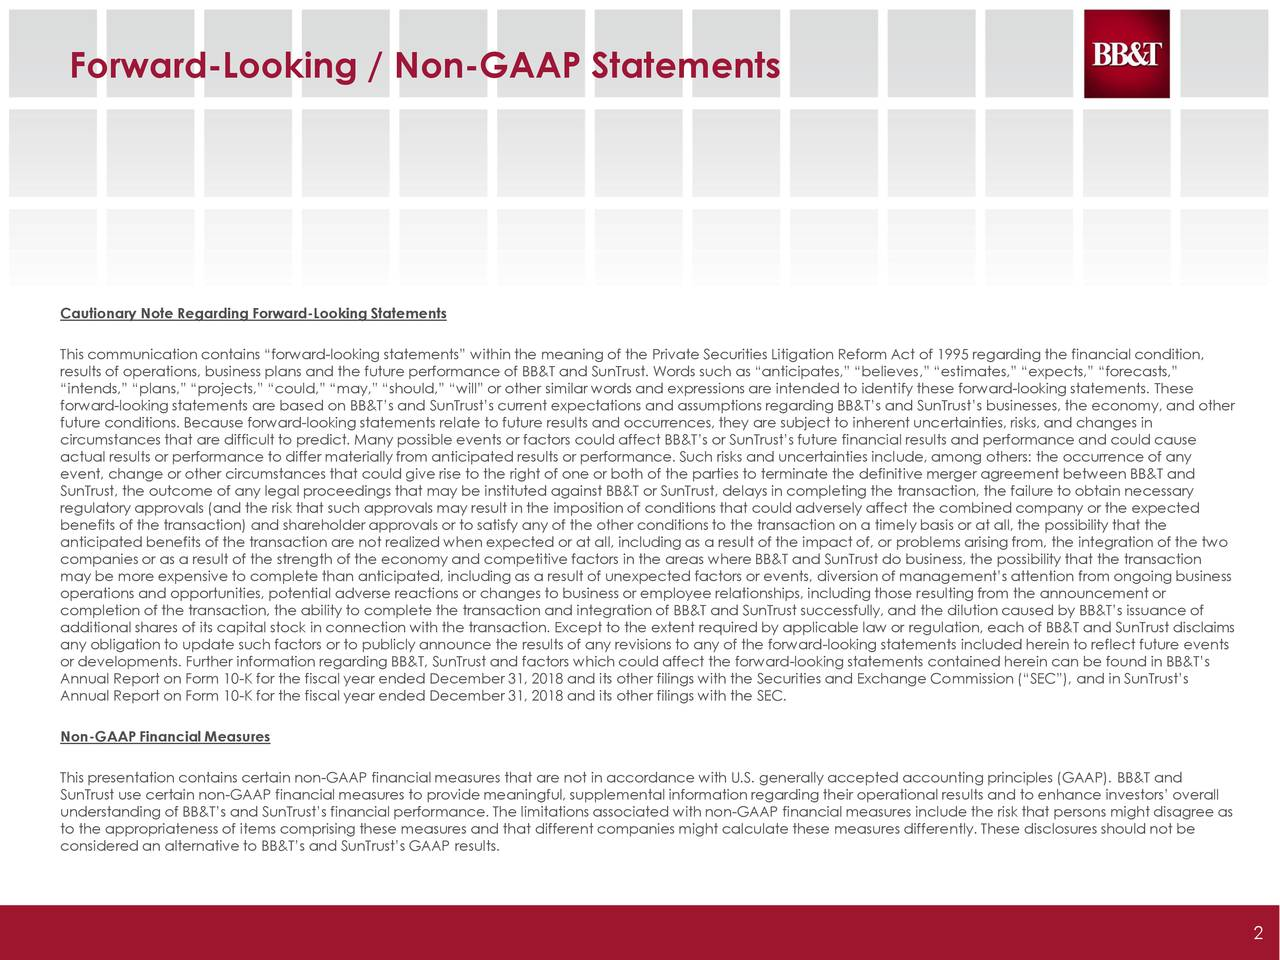 """Cautionary Note Regarding Forward-Looking Statements This communication contains """"forward-looking statements"""" within the meaning of the Private Securities Litigation Reform Act of 1995 regarding the financial condition, results of operations, business plans and the future performance of BB&T and SunTrust. Words such as """"anticipates,"""" """"believes,"""" """"estimates,"""" """"expects,"""" """"forecasts,"""" """"intends,"""" """"plans,"""" """"projects,"""" """"could,"""" """"may,"""" """"should,"""" """"will"""" or other similar words and expressions are intended to identify these forward-looking statements. These forward-looking statements are based on BB&T's and SunTrust's current expectations and assumptions regarding BB&T's and SunTrust's businesses, the economy, and other future conditions. Because forward-looking statements relate to future results and occurrences, they are subject to inherent uncertainties, risks, and changes in circumstances that are difficult to predict. Many possible events or factors could affect BB&T's or SunTrust's future financial results and performance and could cause actual results or performance to differ materially from anticipated results or performance. Such risks and uncertainties include, among others: the occurrence of any event, change or other circumstances that could give rise to the right of one or both of the parties to terminate the definitive merger agreement between BB&T and SunTrust, the outcome of any legal proceedings that may be instituted against BB&T or SunTrust, delays in completing the transaction, the failure to obtain necessary regulatory approvals (and the risk that such approvals may result in the imposition of conditions that could adversely affect the combined company or the expected benefits of the transaction) and shareholder approvals or to satisfy any of the other conditions to the transaction on a timely basis or at all, the possibility that the anticipated benefits of the transaction are not realized when expected or at all, including as a result of the impact of, """